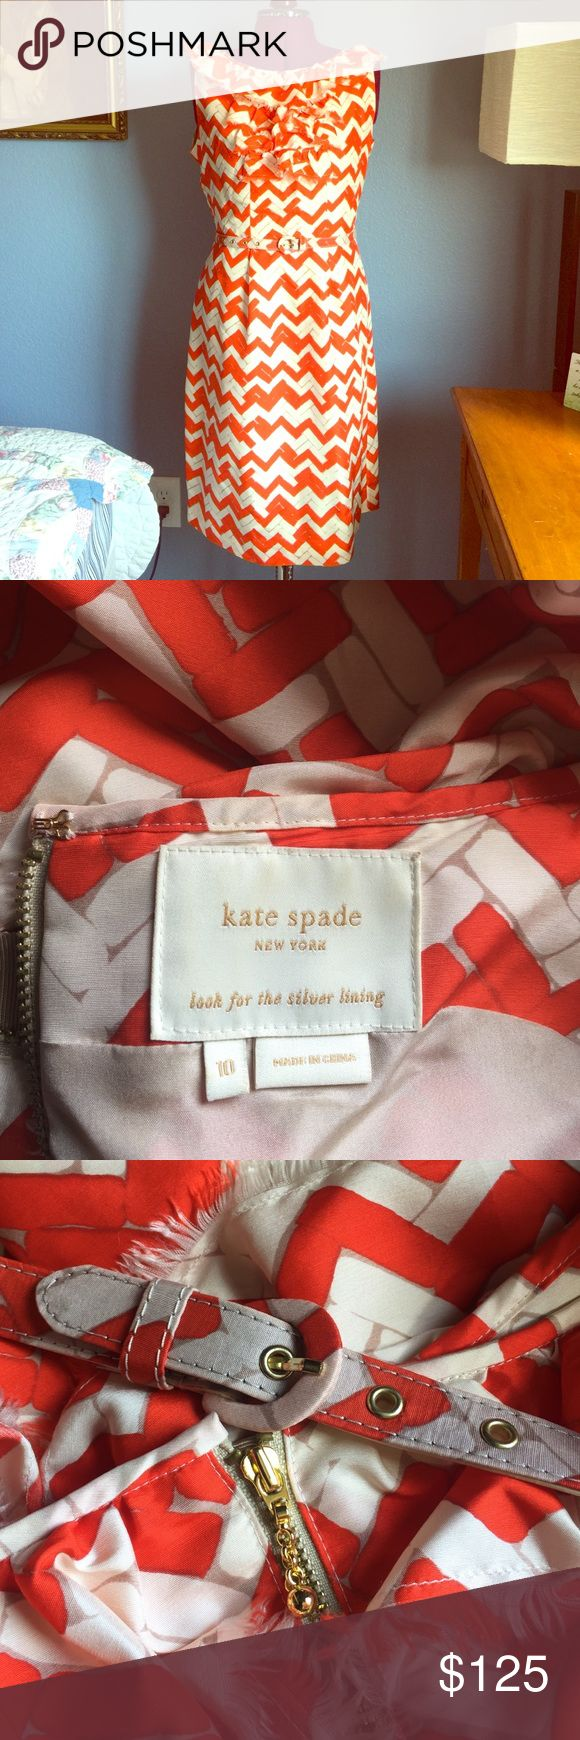 Kate Spade Dress Beautiful Kate Spade dress in orange and creme. Ruffled edge, lined sheath, layered anti-snag zipper and buckled belt. Worn 1 time! In perfect condition except for the small spot on the skirt as shown in the picture, very likely can come out with treatment I am just unsure as how to treat 100% silk kate spade Dresses